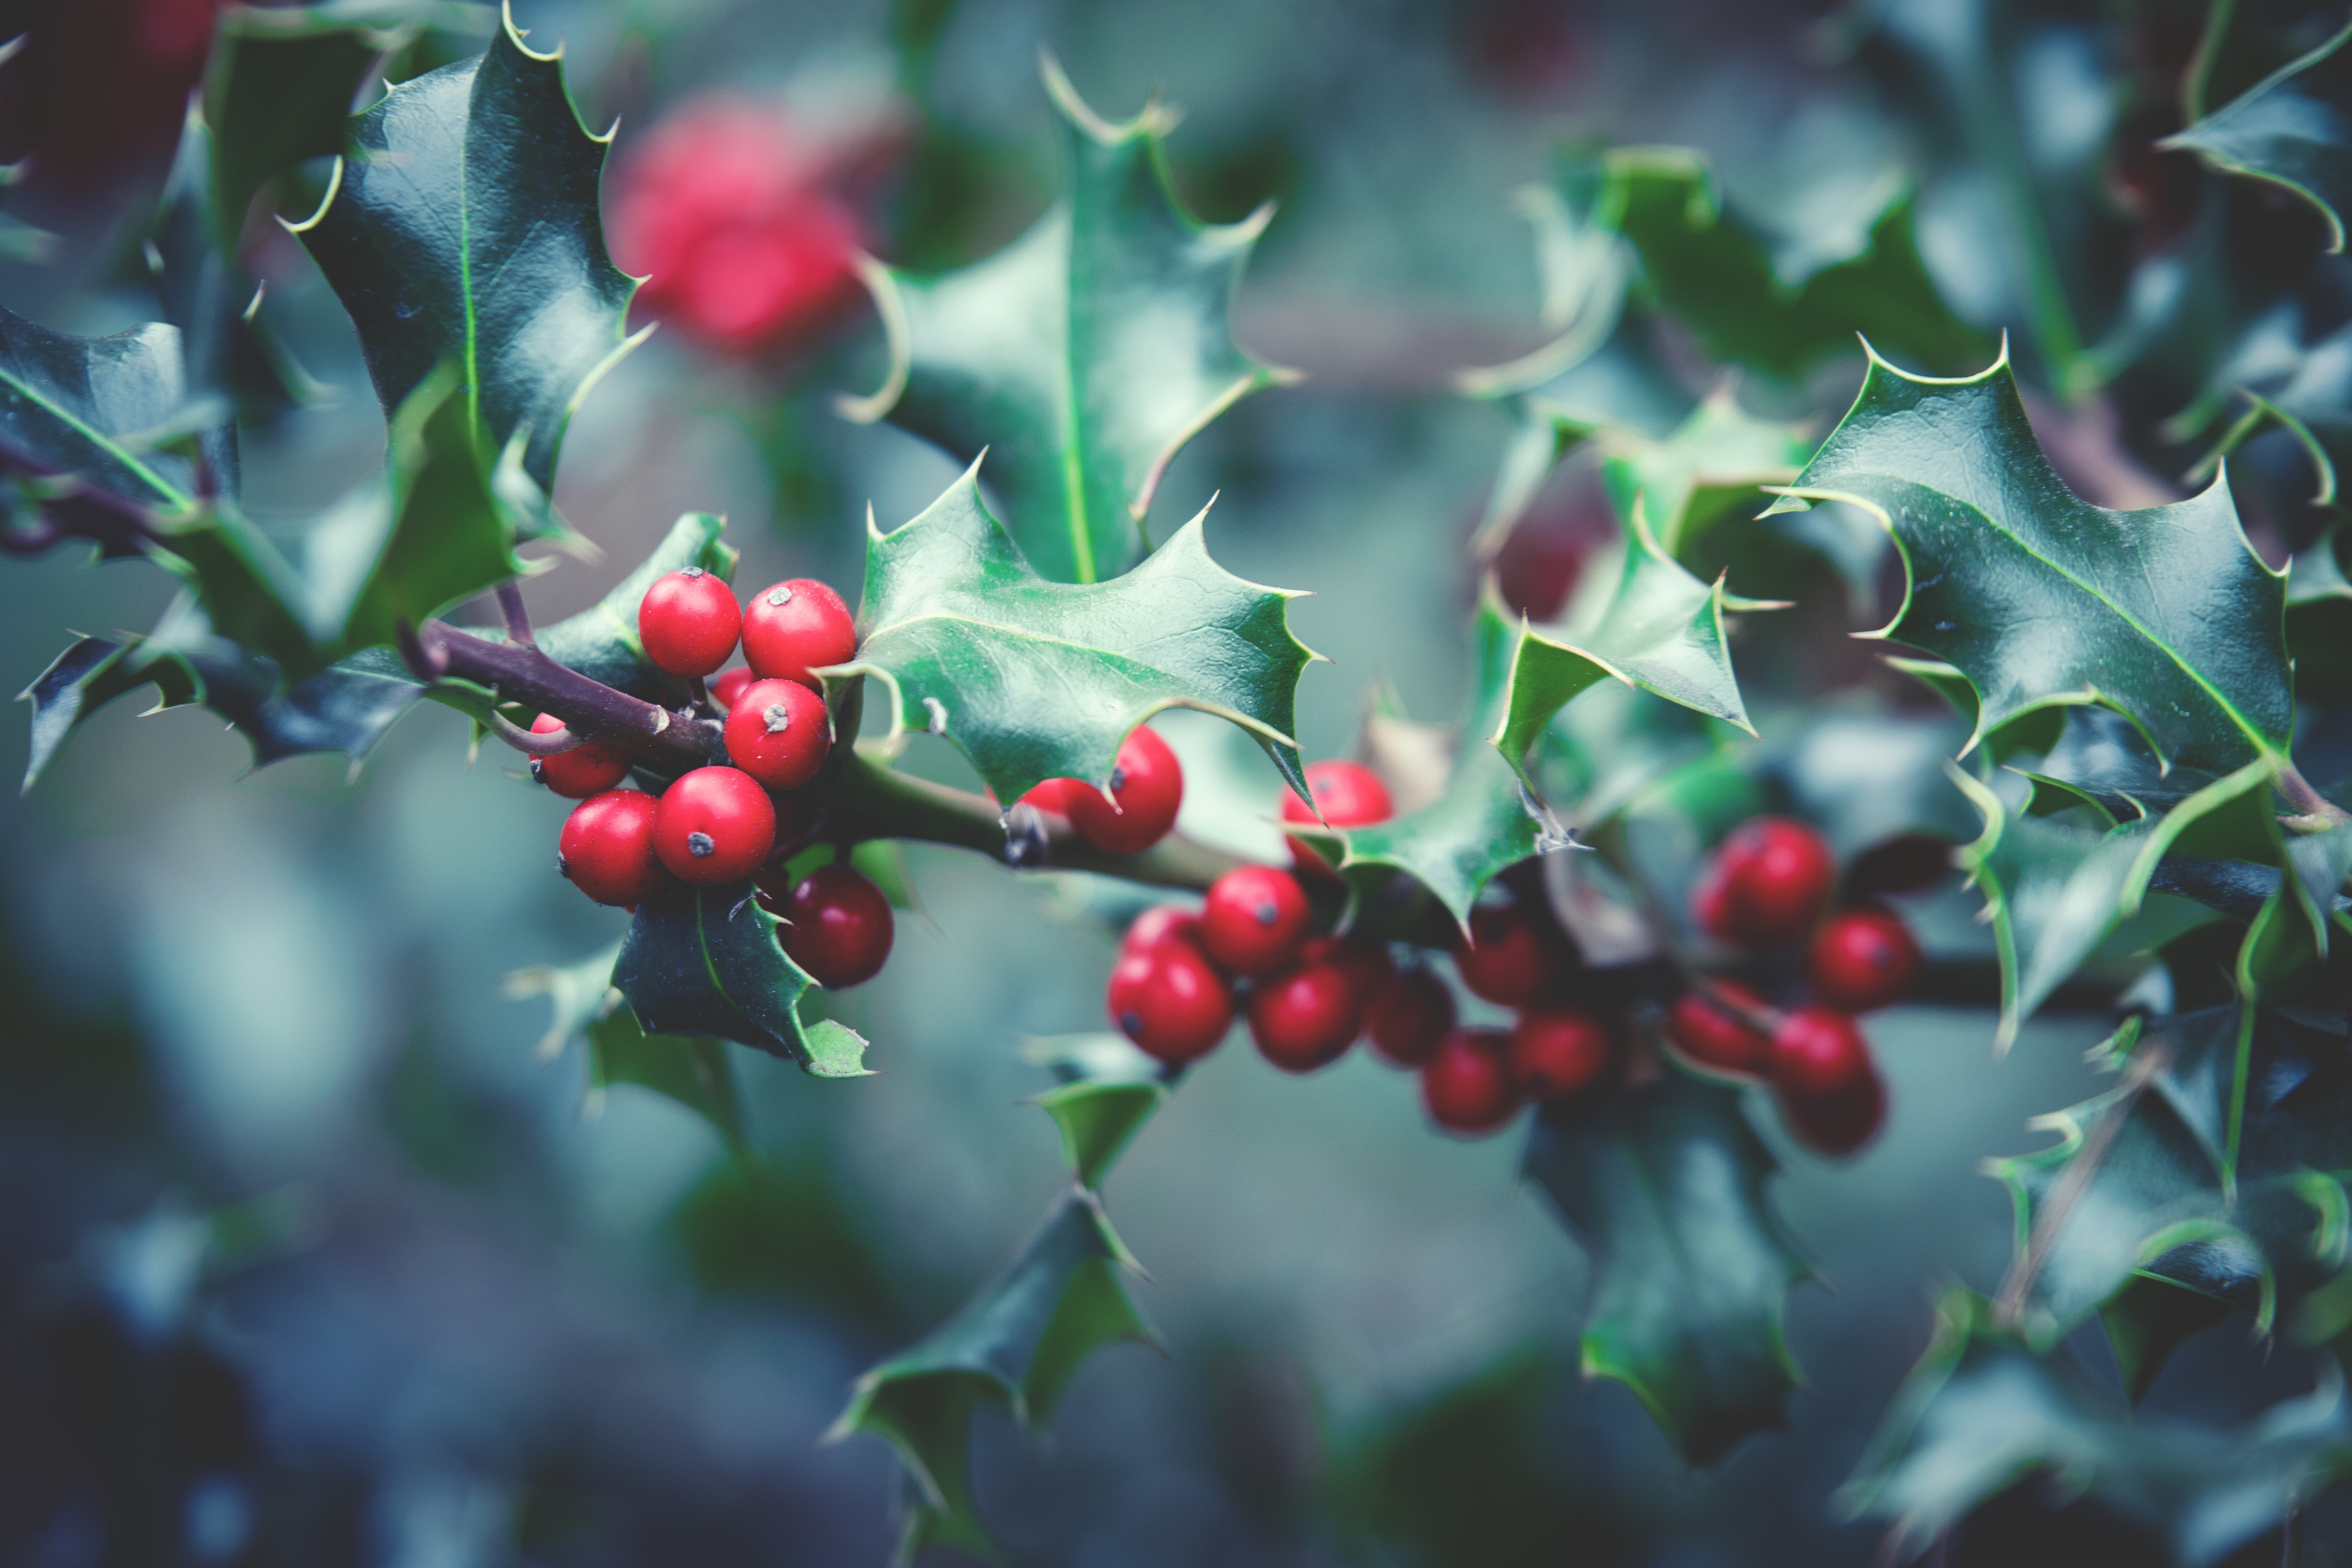 Mistletoe and holly legends and traditions